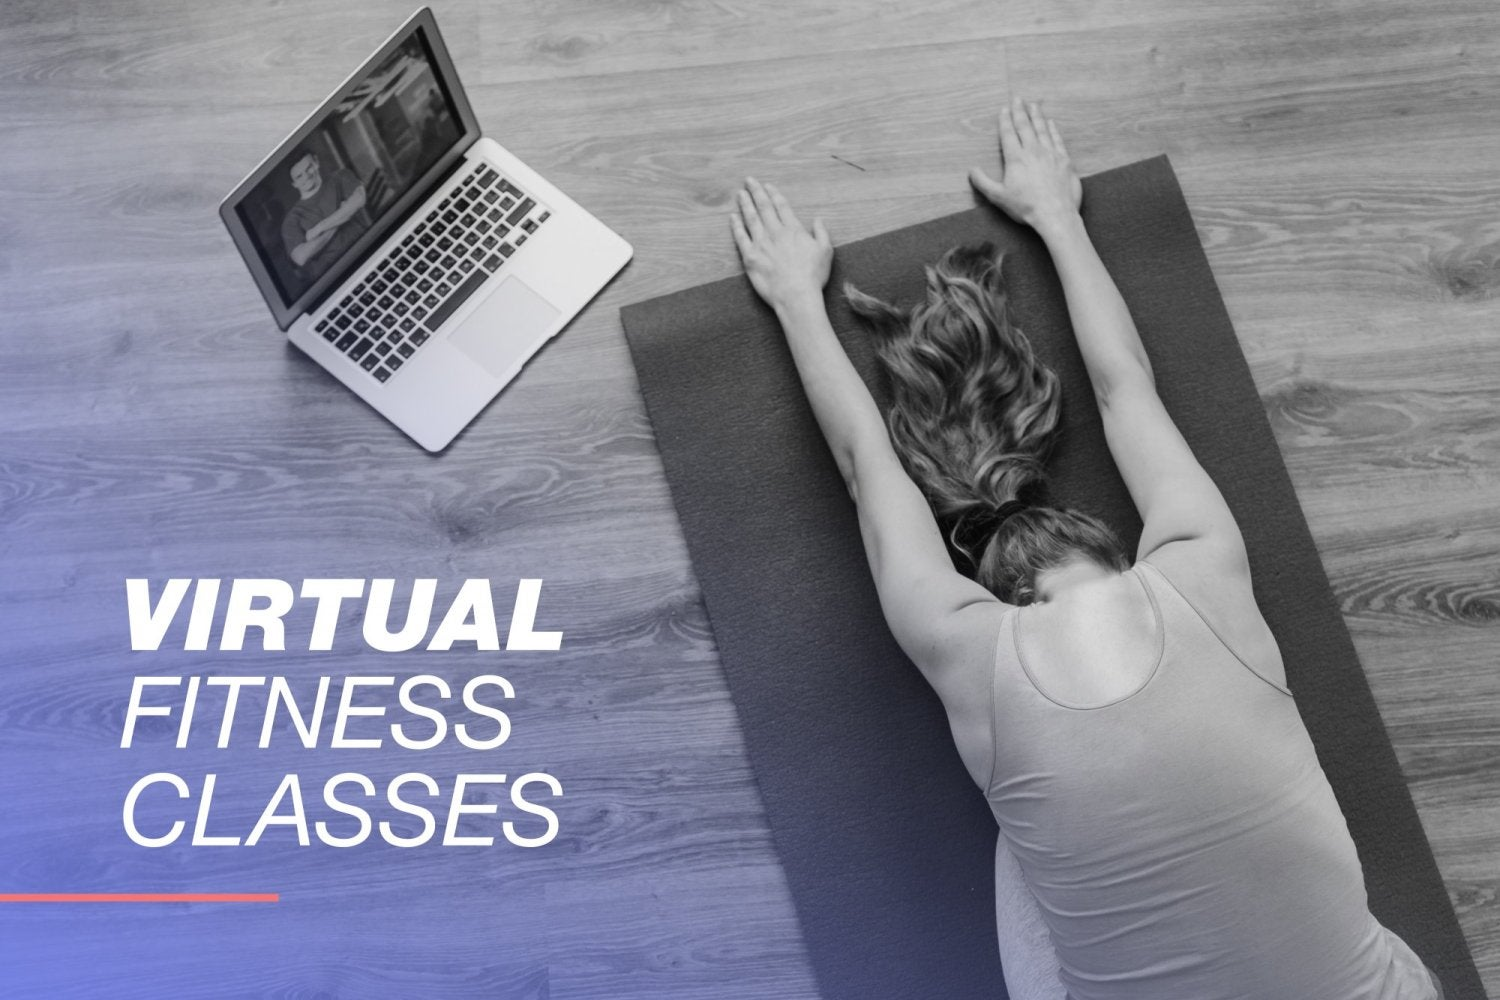 Person practicing yoga with a laptop next to them